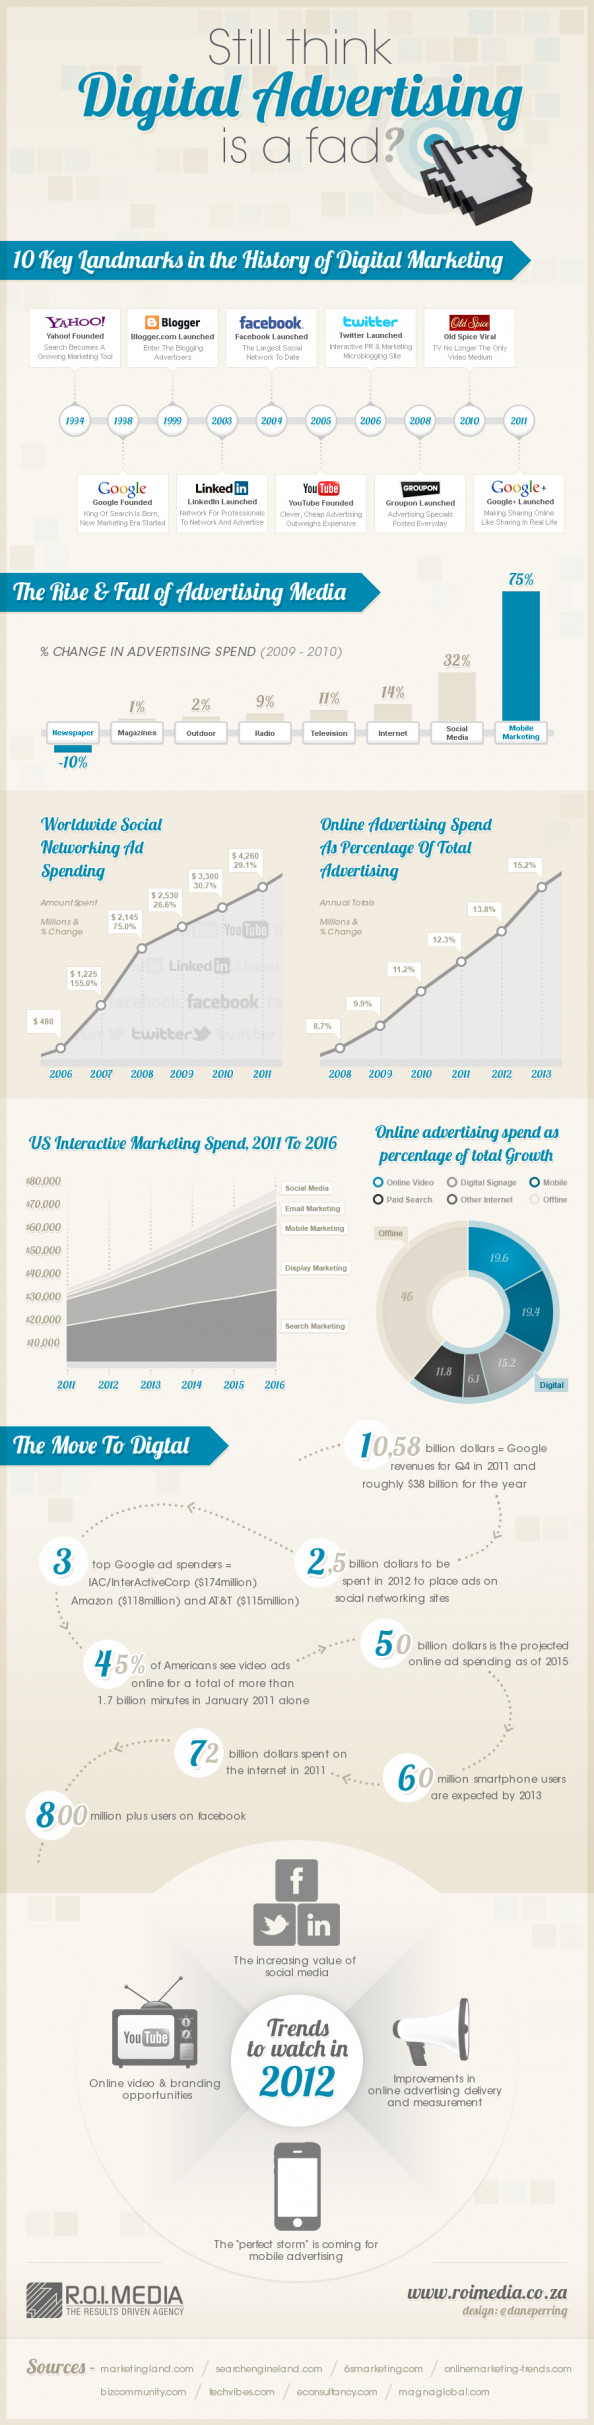 Still Think Digital Advertising Is A Fad? Infographic